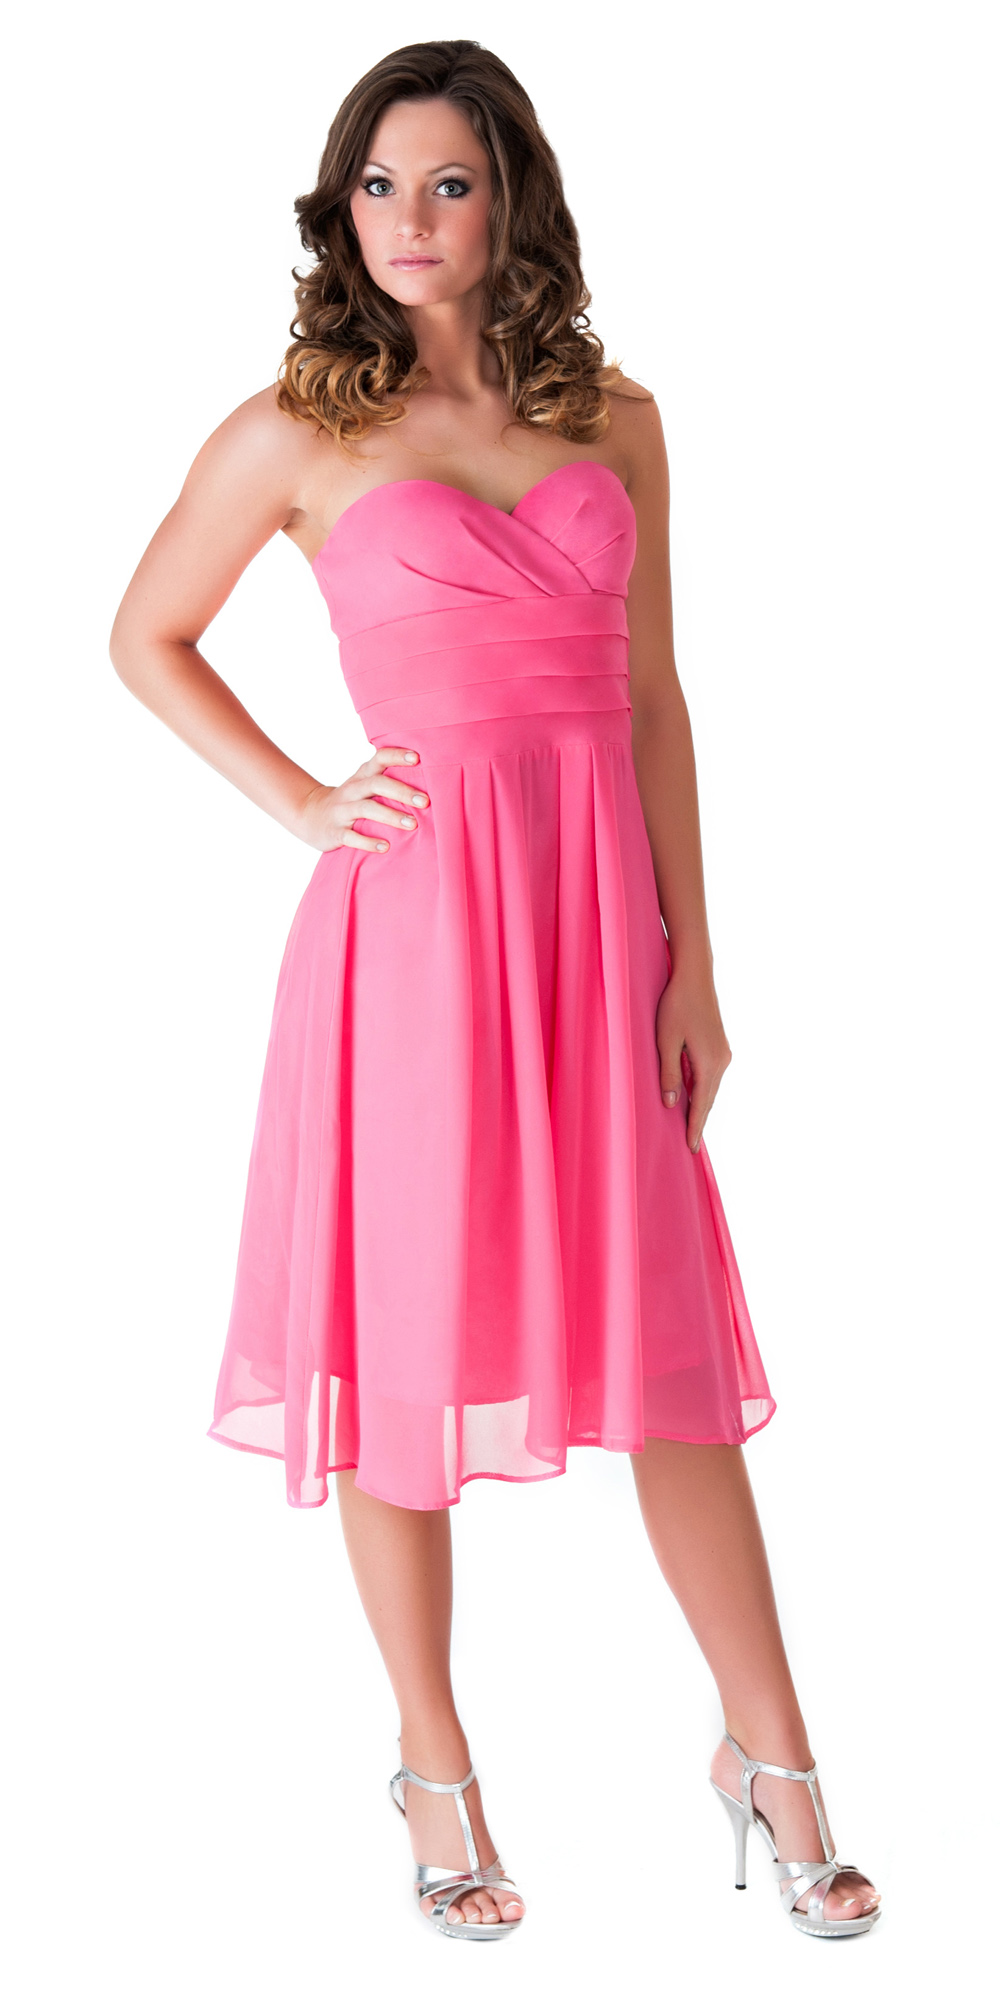 Formal Dress Evening Gown Bridesmaid Wedding Party Prom XS - 2xl M ...